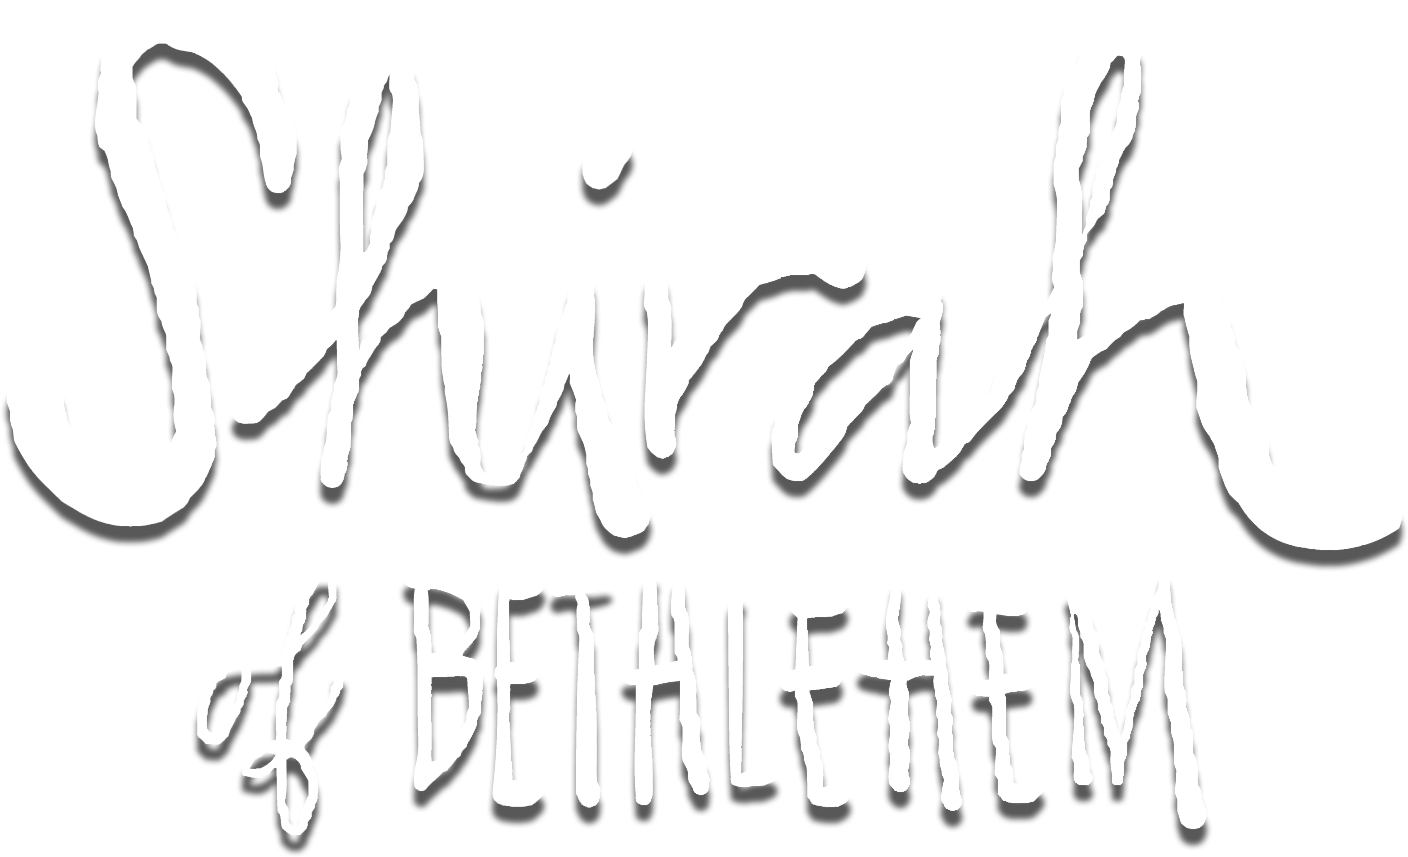 Shirah of Bethlehem